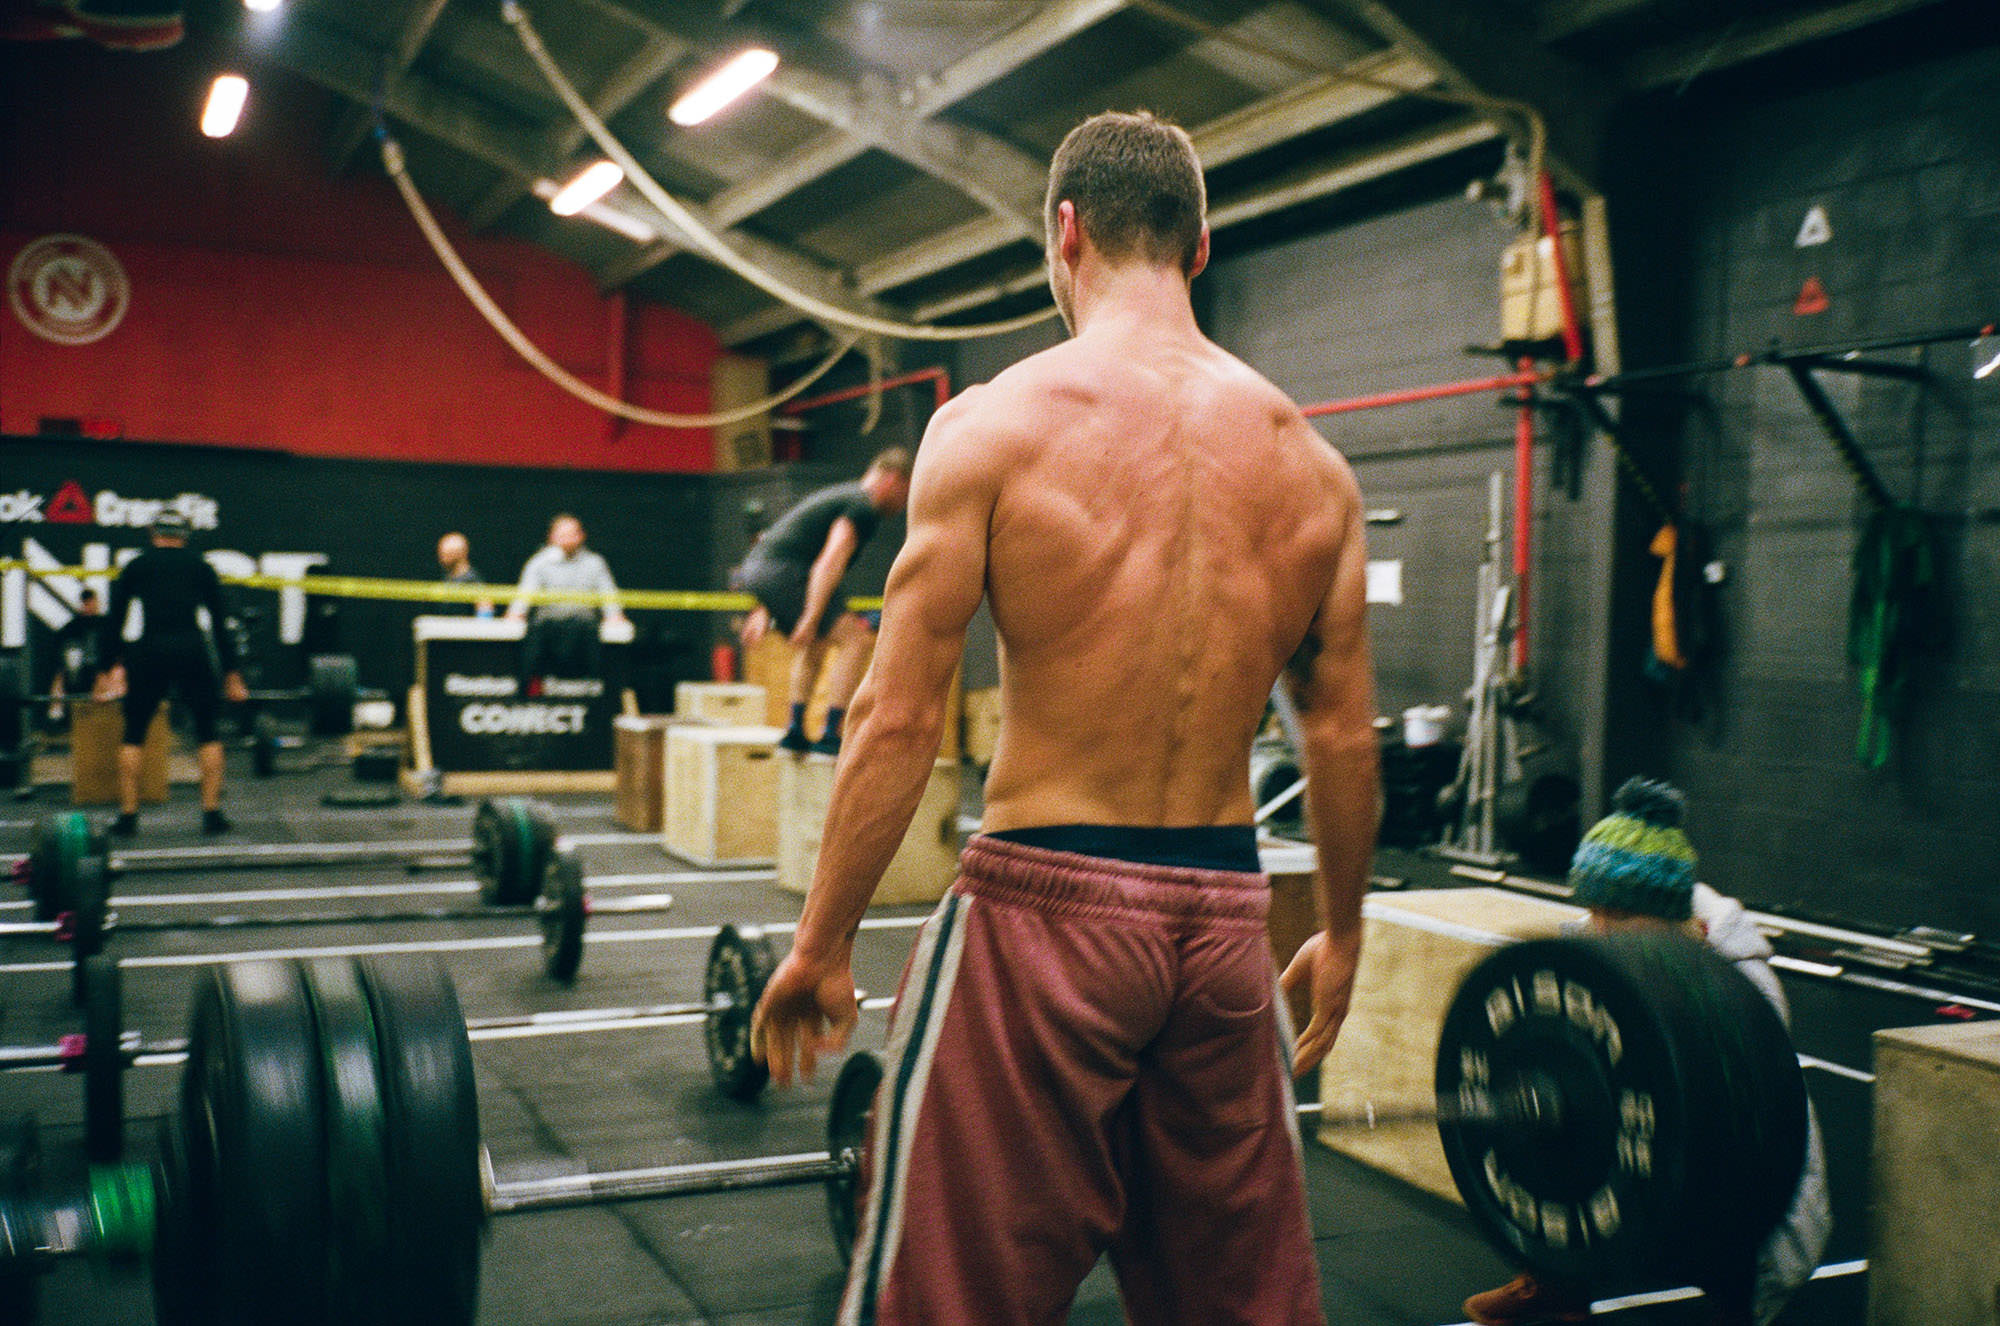 crossfit, athlete, weightliofting, film photography